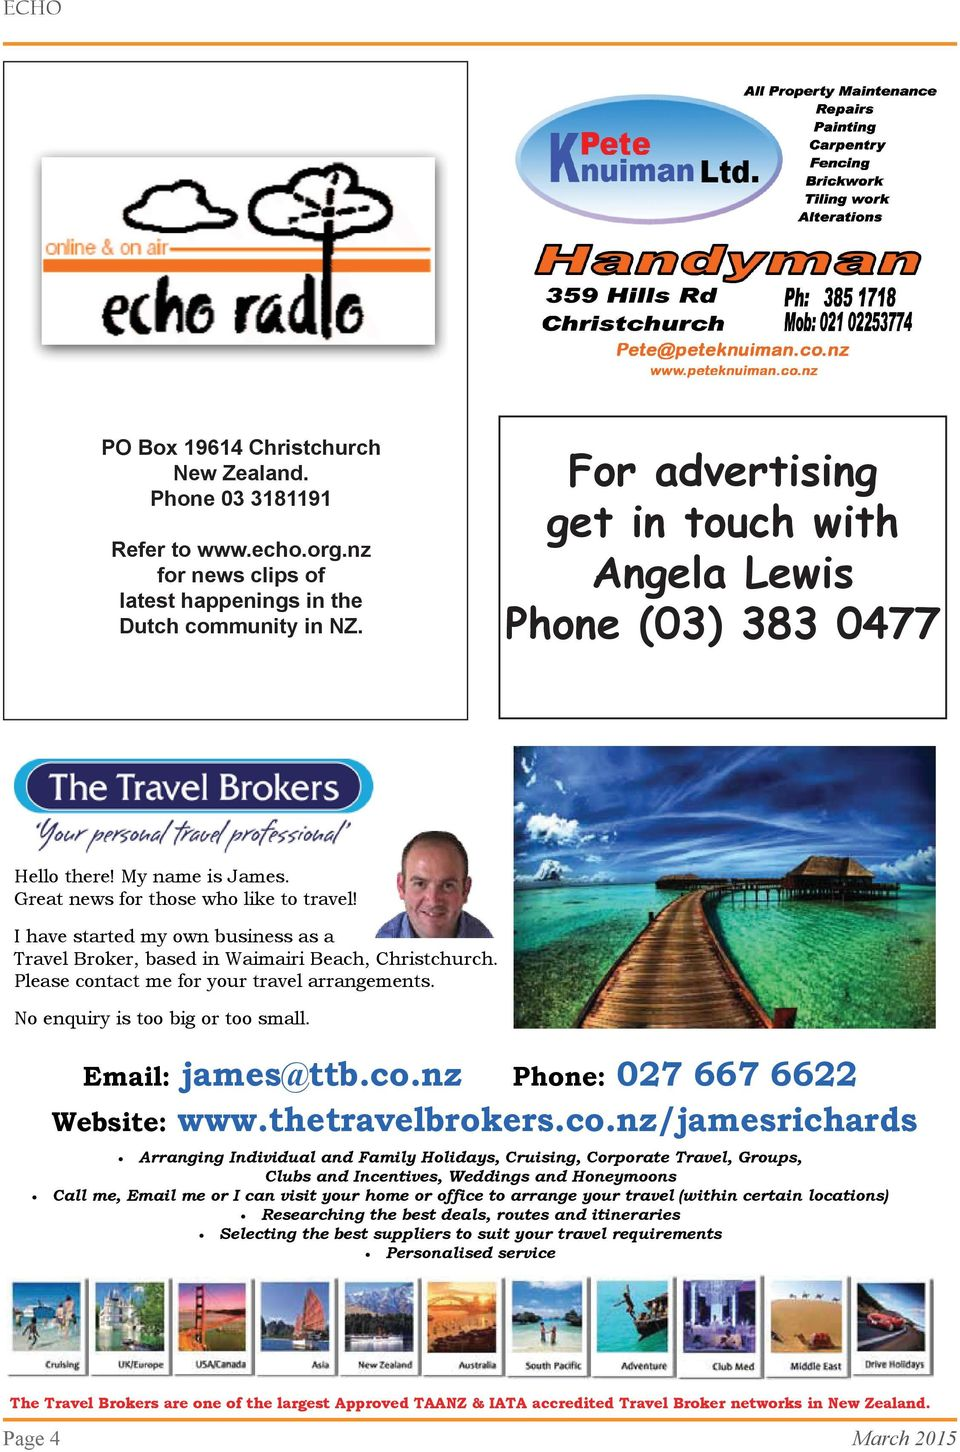 I have started my own business as a Travel Broker, based in Waimairi Beach, Christchurch. Please contact me for your travel arrangements. No enquiry is too big or too small. Email: james@ttb.co.nz Phone: 027 667 6622 Website: www.